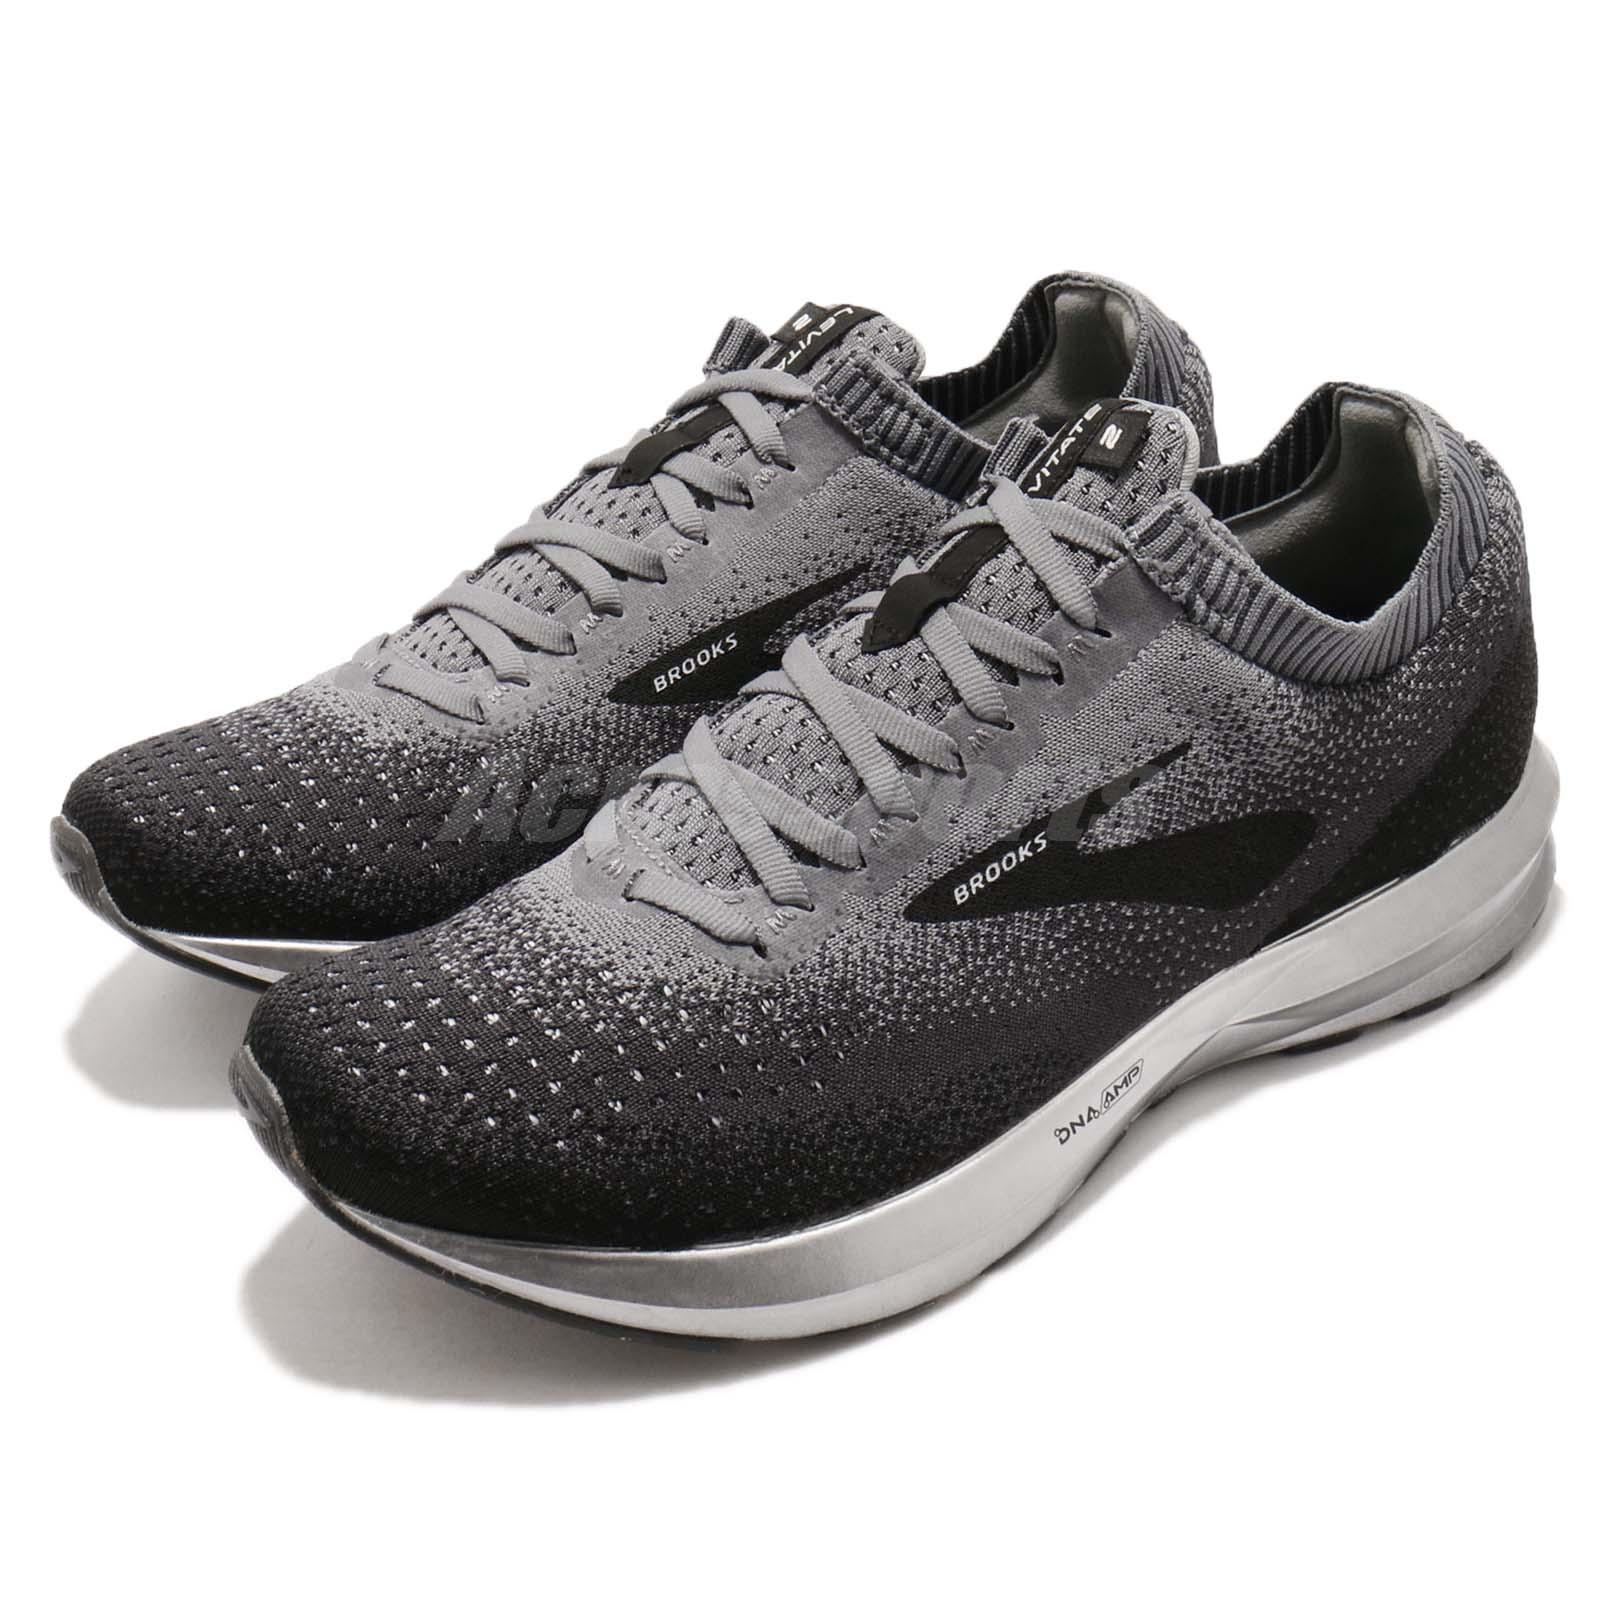 4a3f67db77401 Details about Brooks Levitate 2 Black Grey Ebony Silver Men Running Shoes  Sneakers 110290 1D